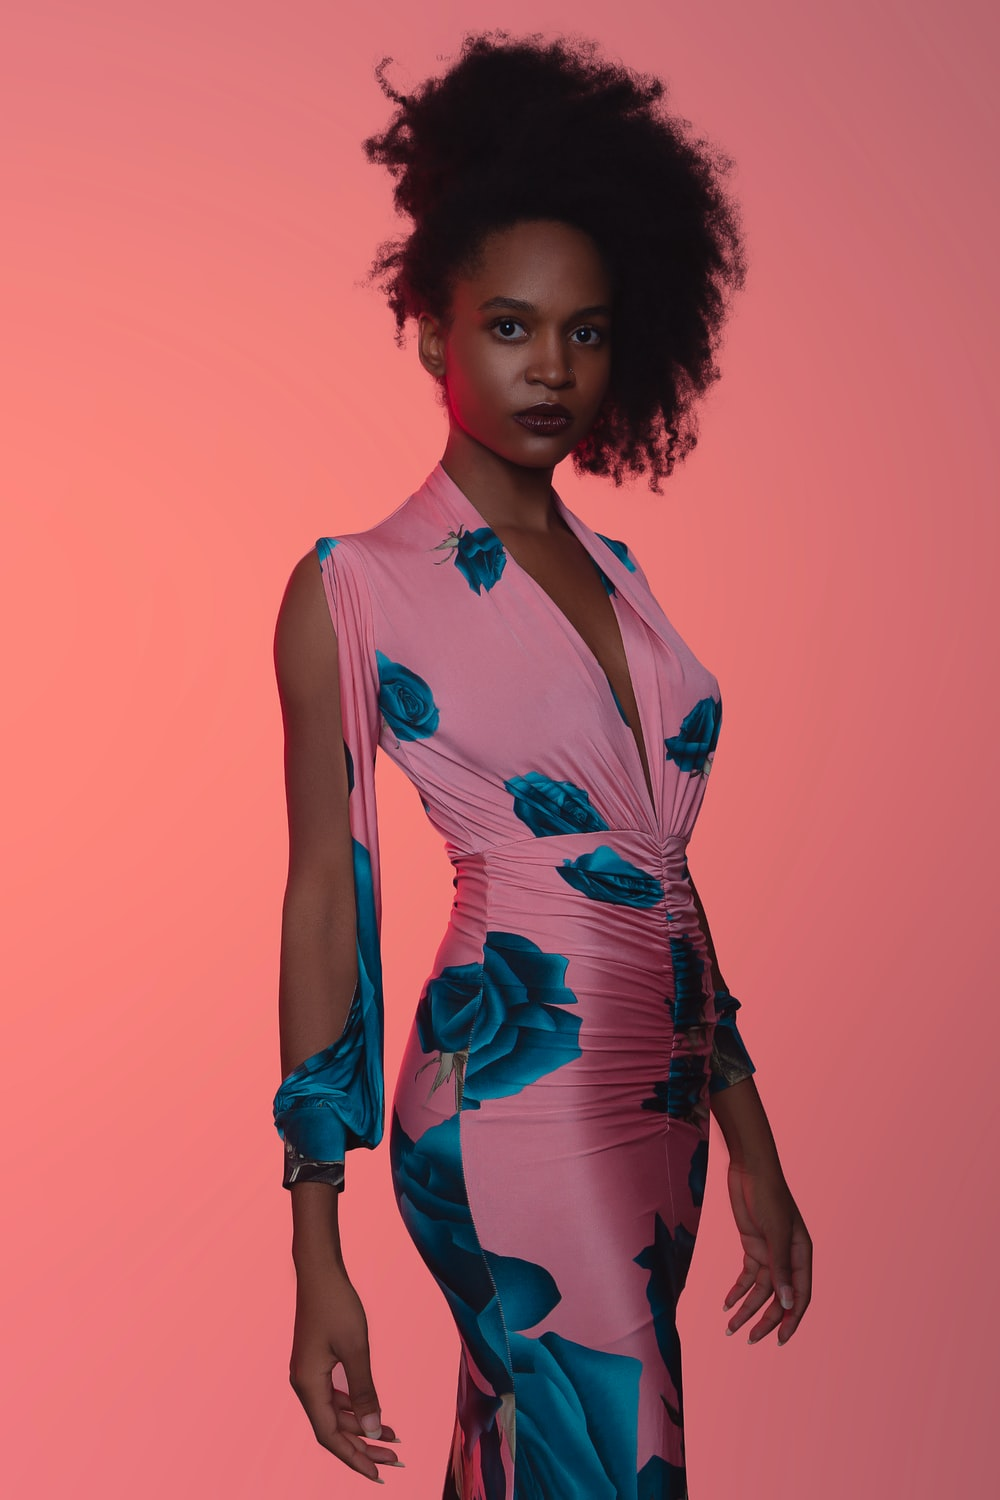 woman wearing pink and blue floral dress